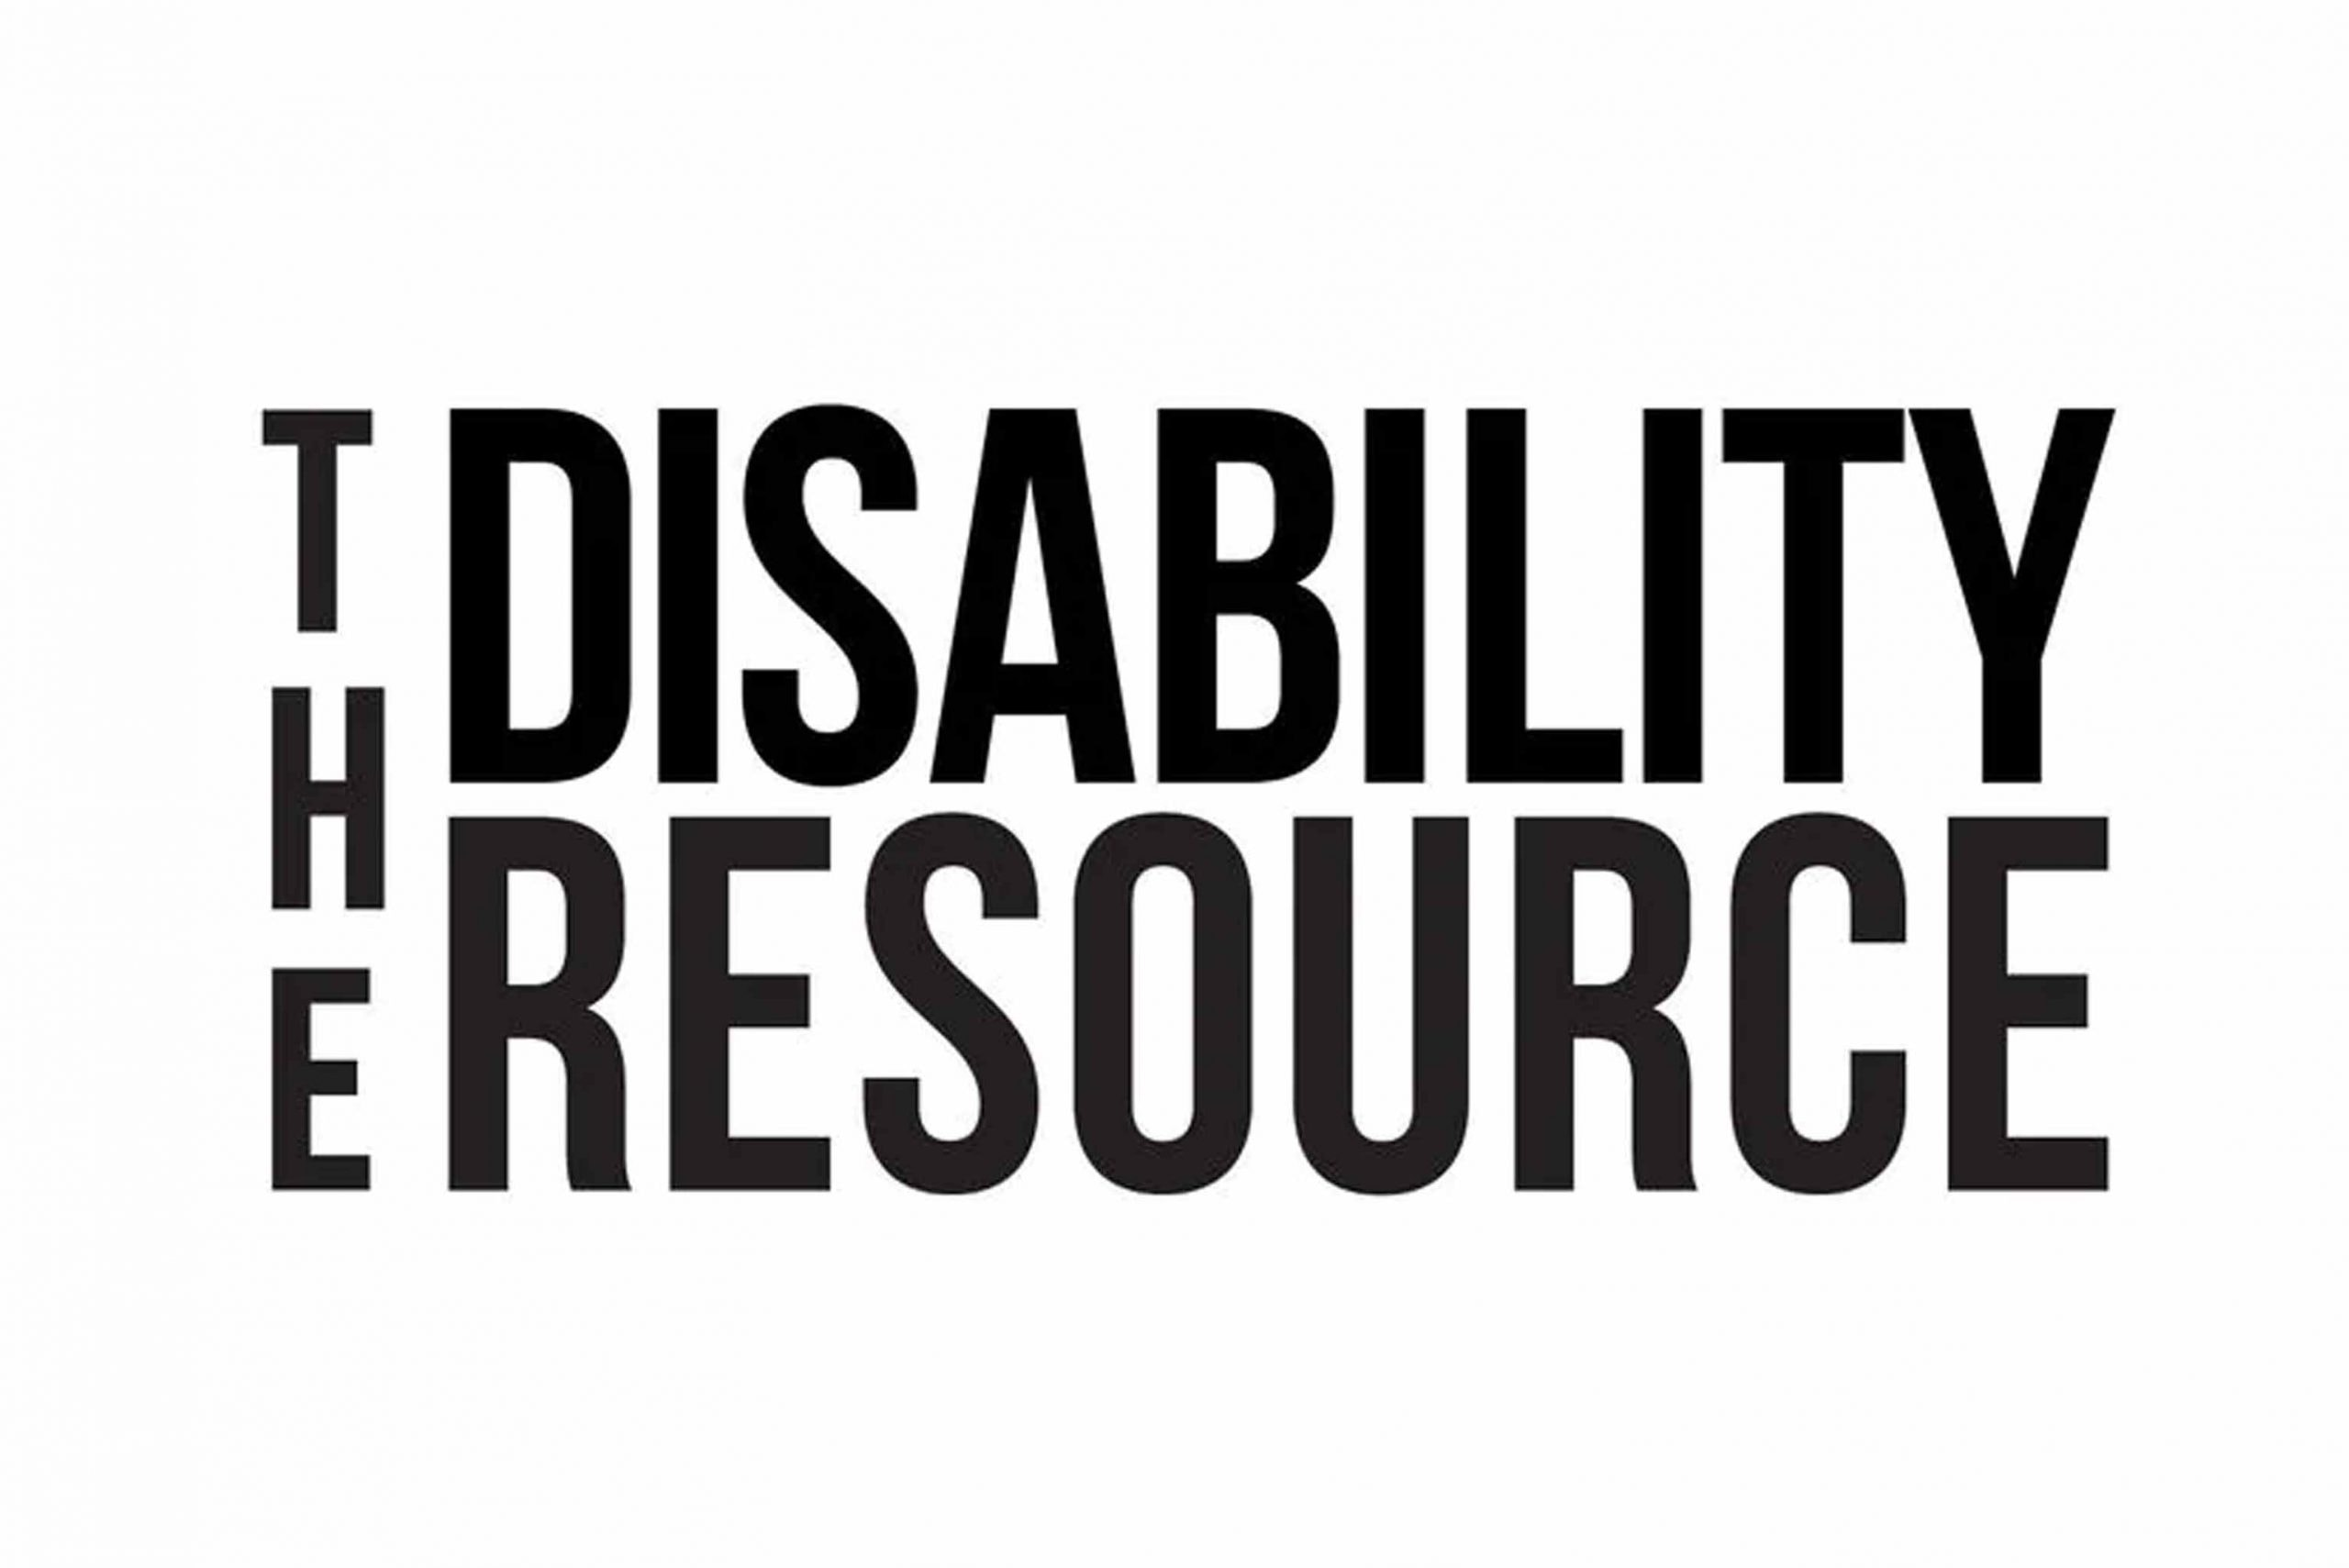 White background. Black text reads The Disability Resource